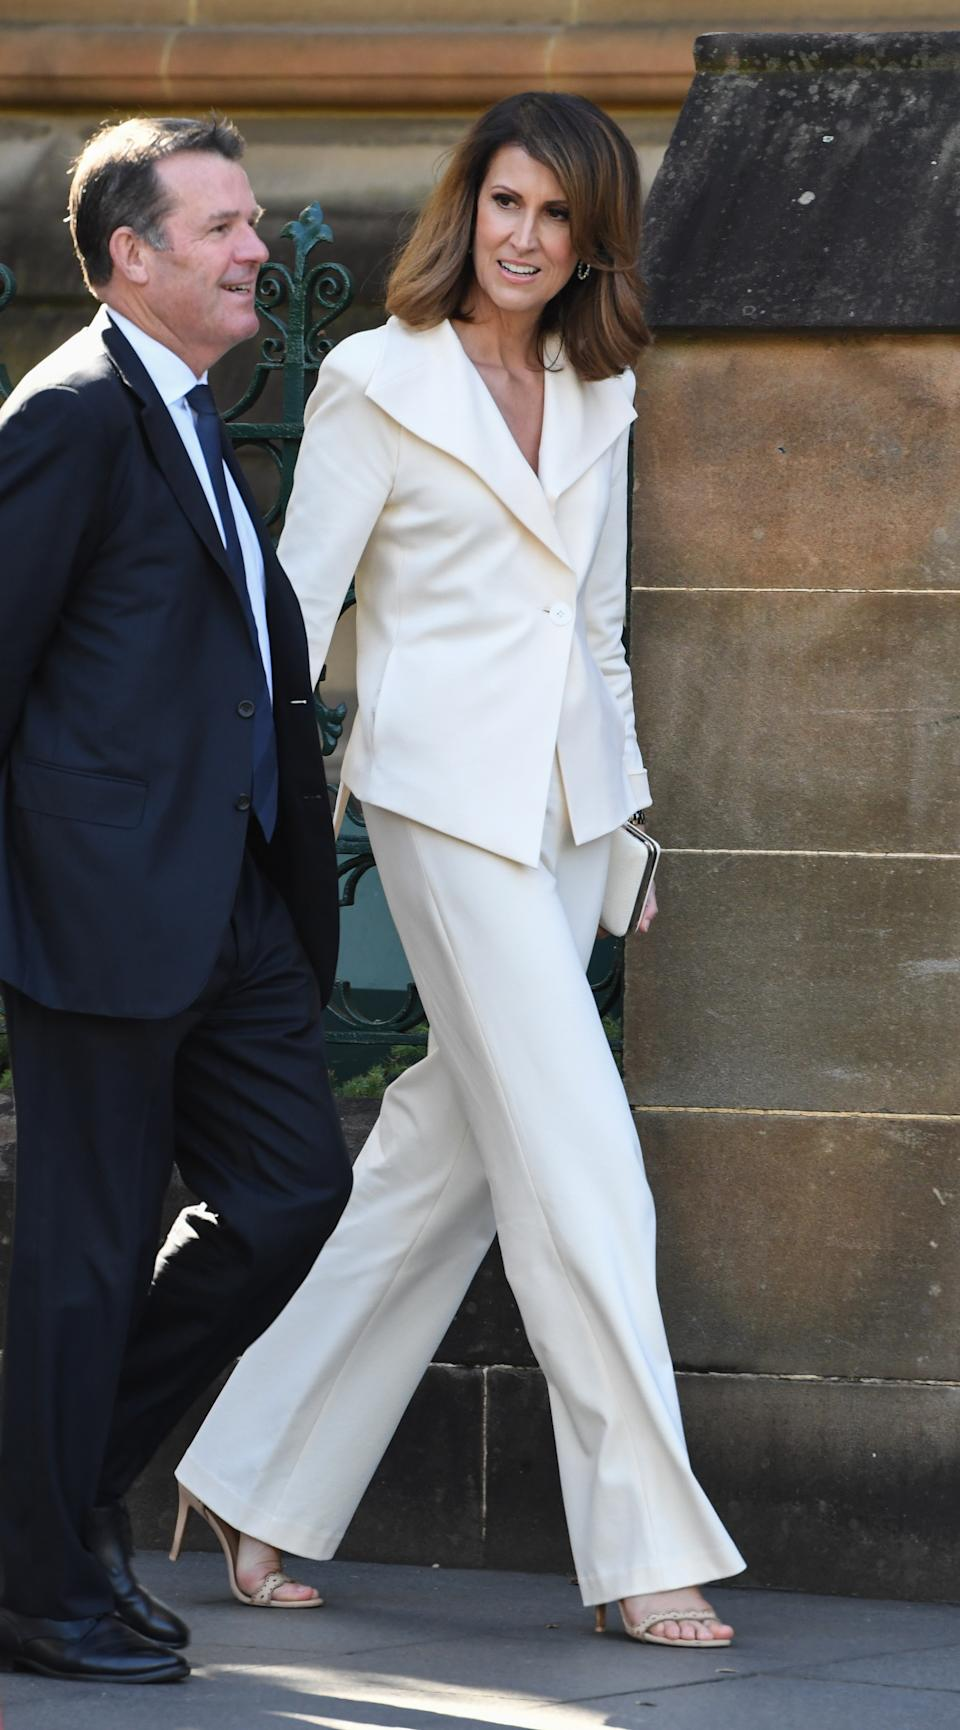 Natalie Barr attends the State Funeral for Carla Zampatti at St Mary's Cathedral on April 15, 2021 in Sydney, Australia.